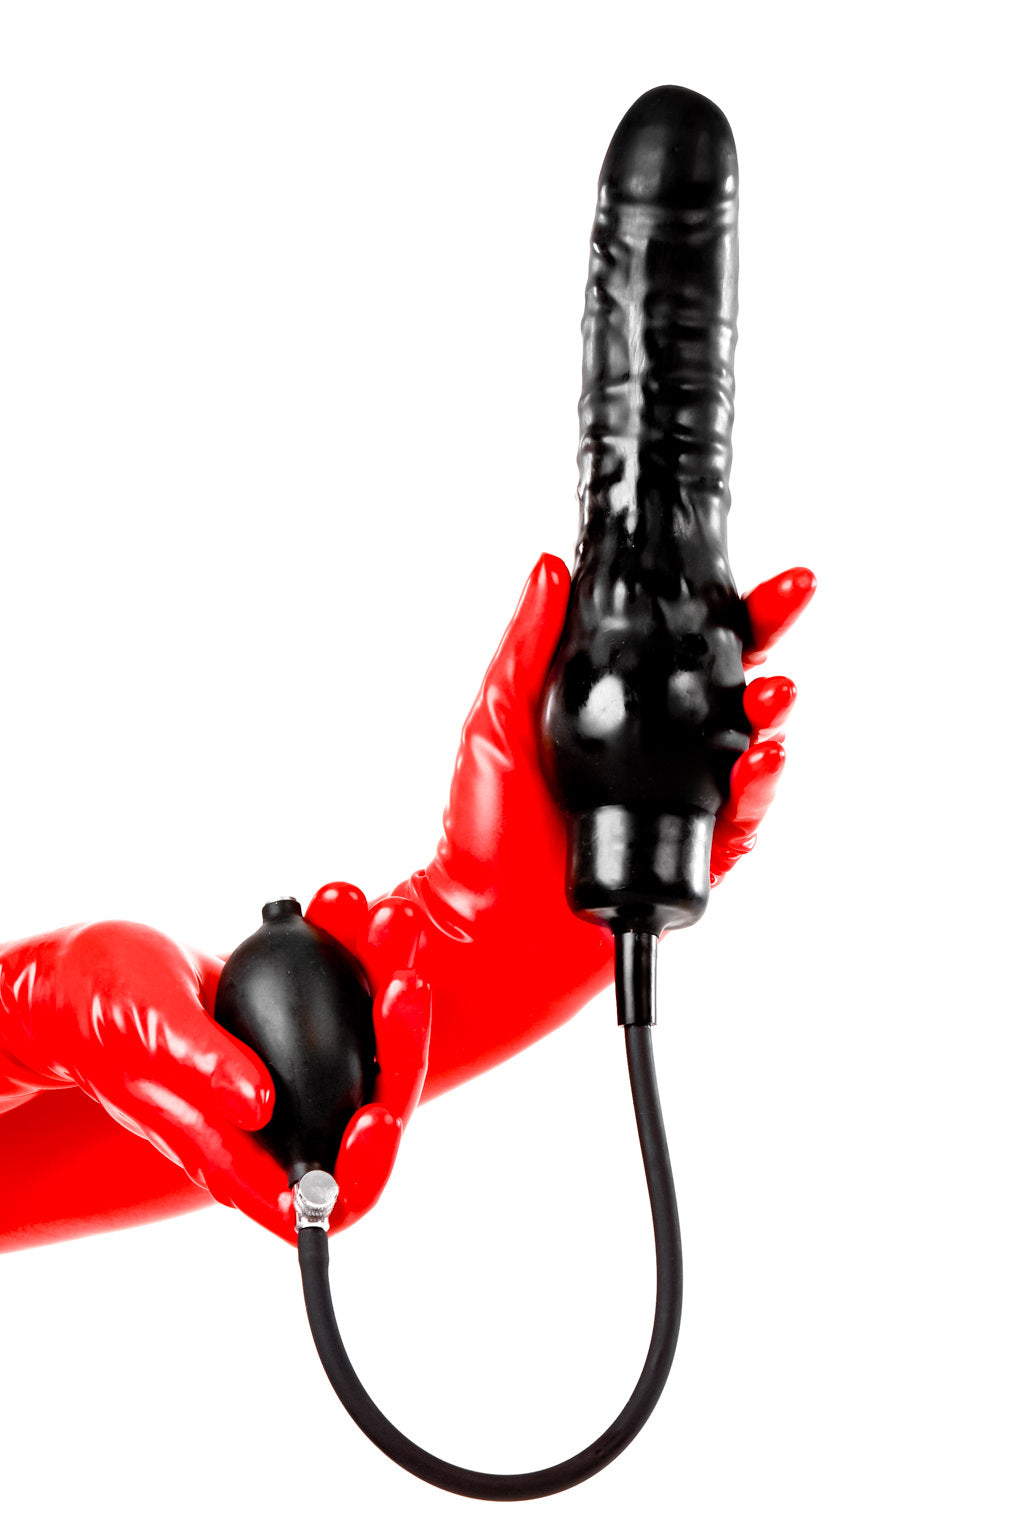 Red latex gloves holding a large inflatable dildo.